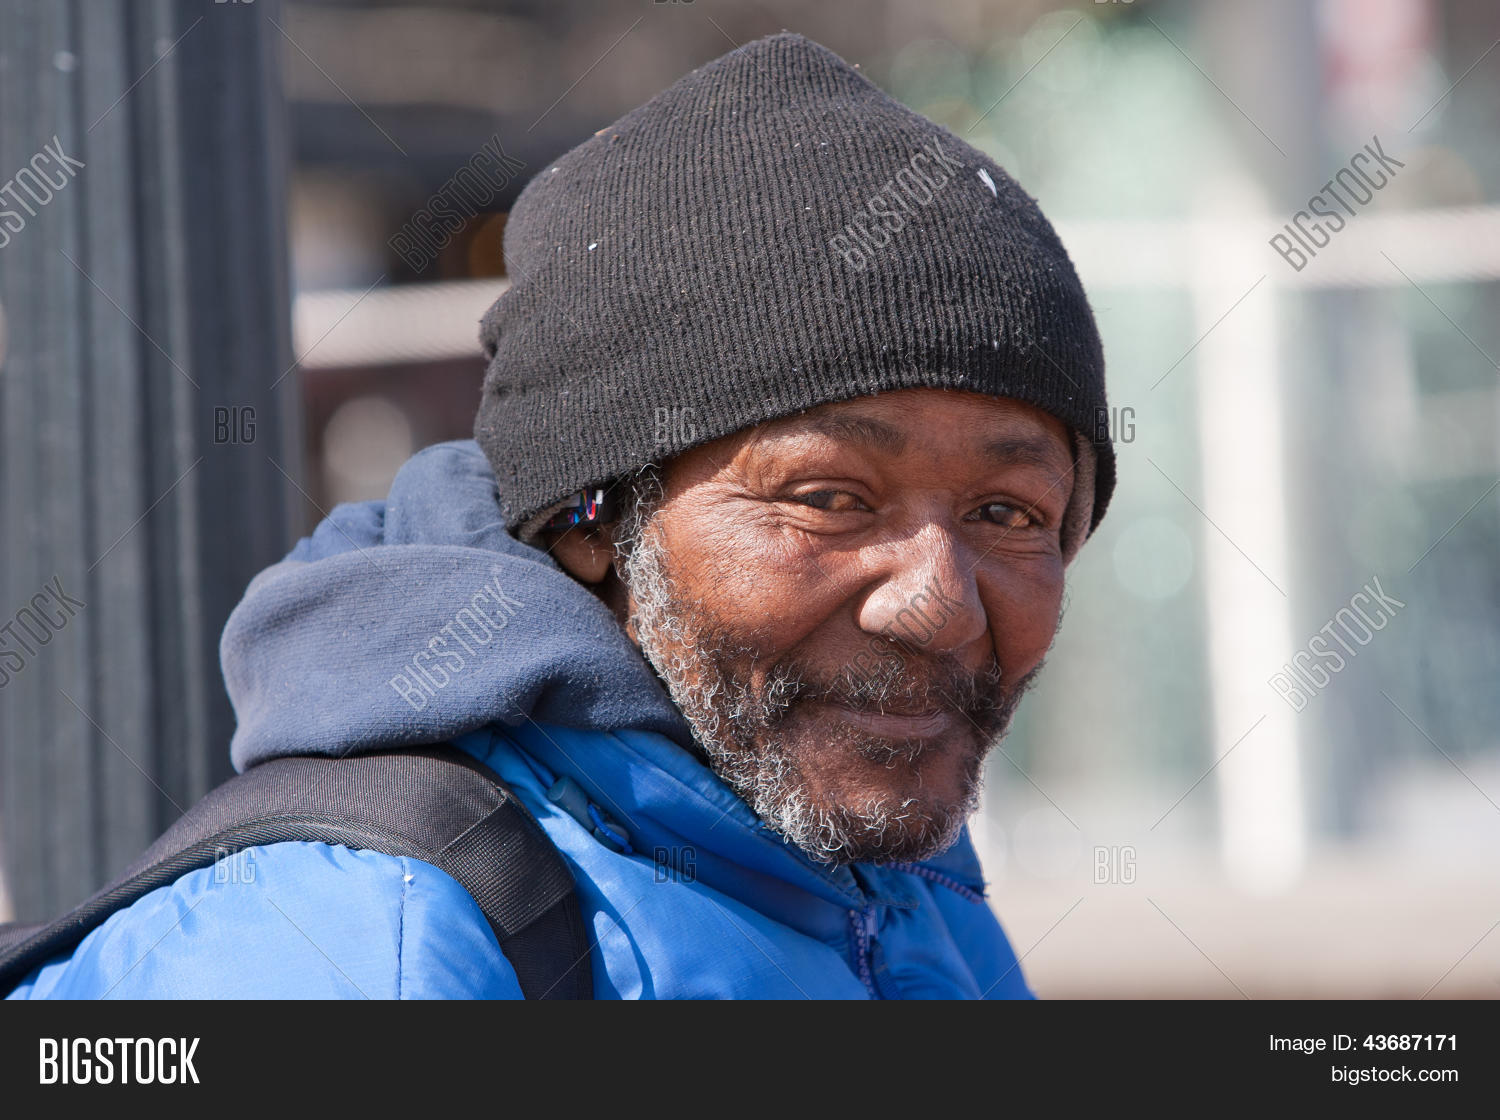 Image Gallery happy homeless